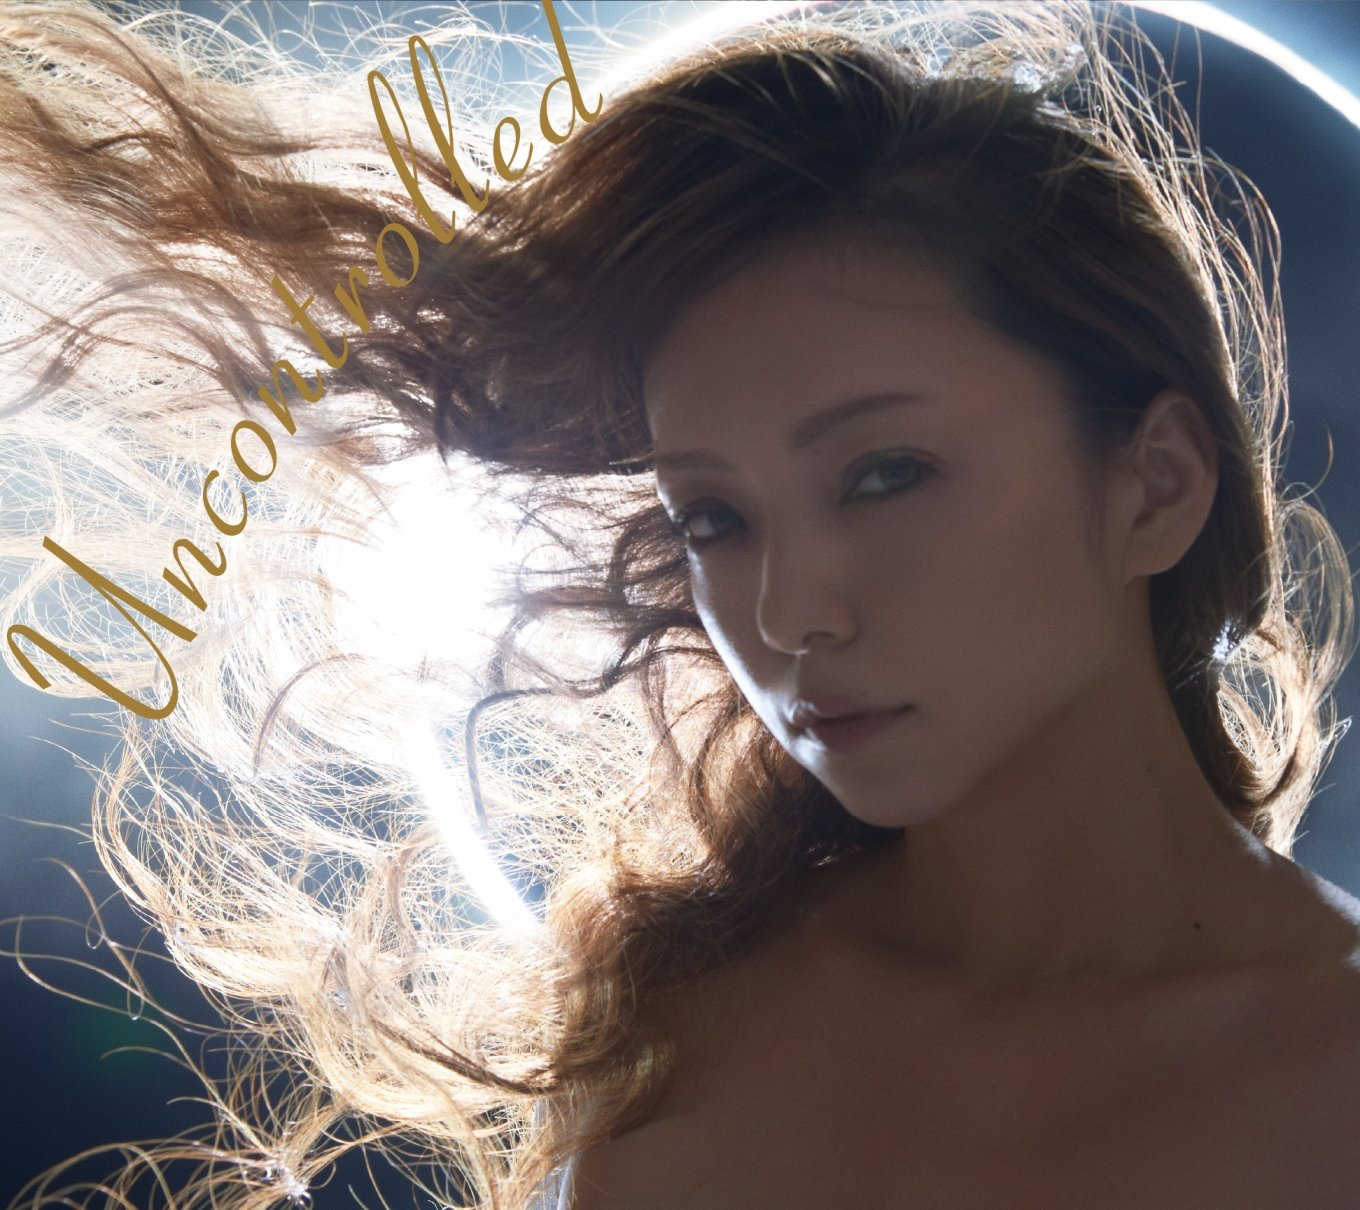 20160405.03.31 Amuro Namie - Uncontrolled cover 1.jpg